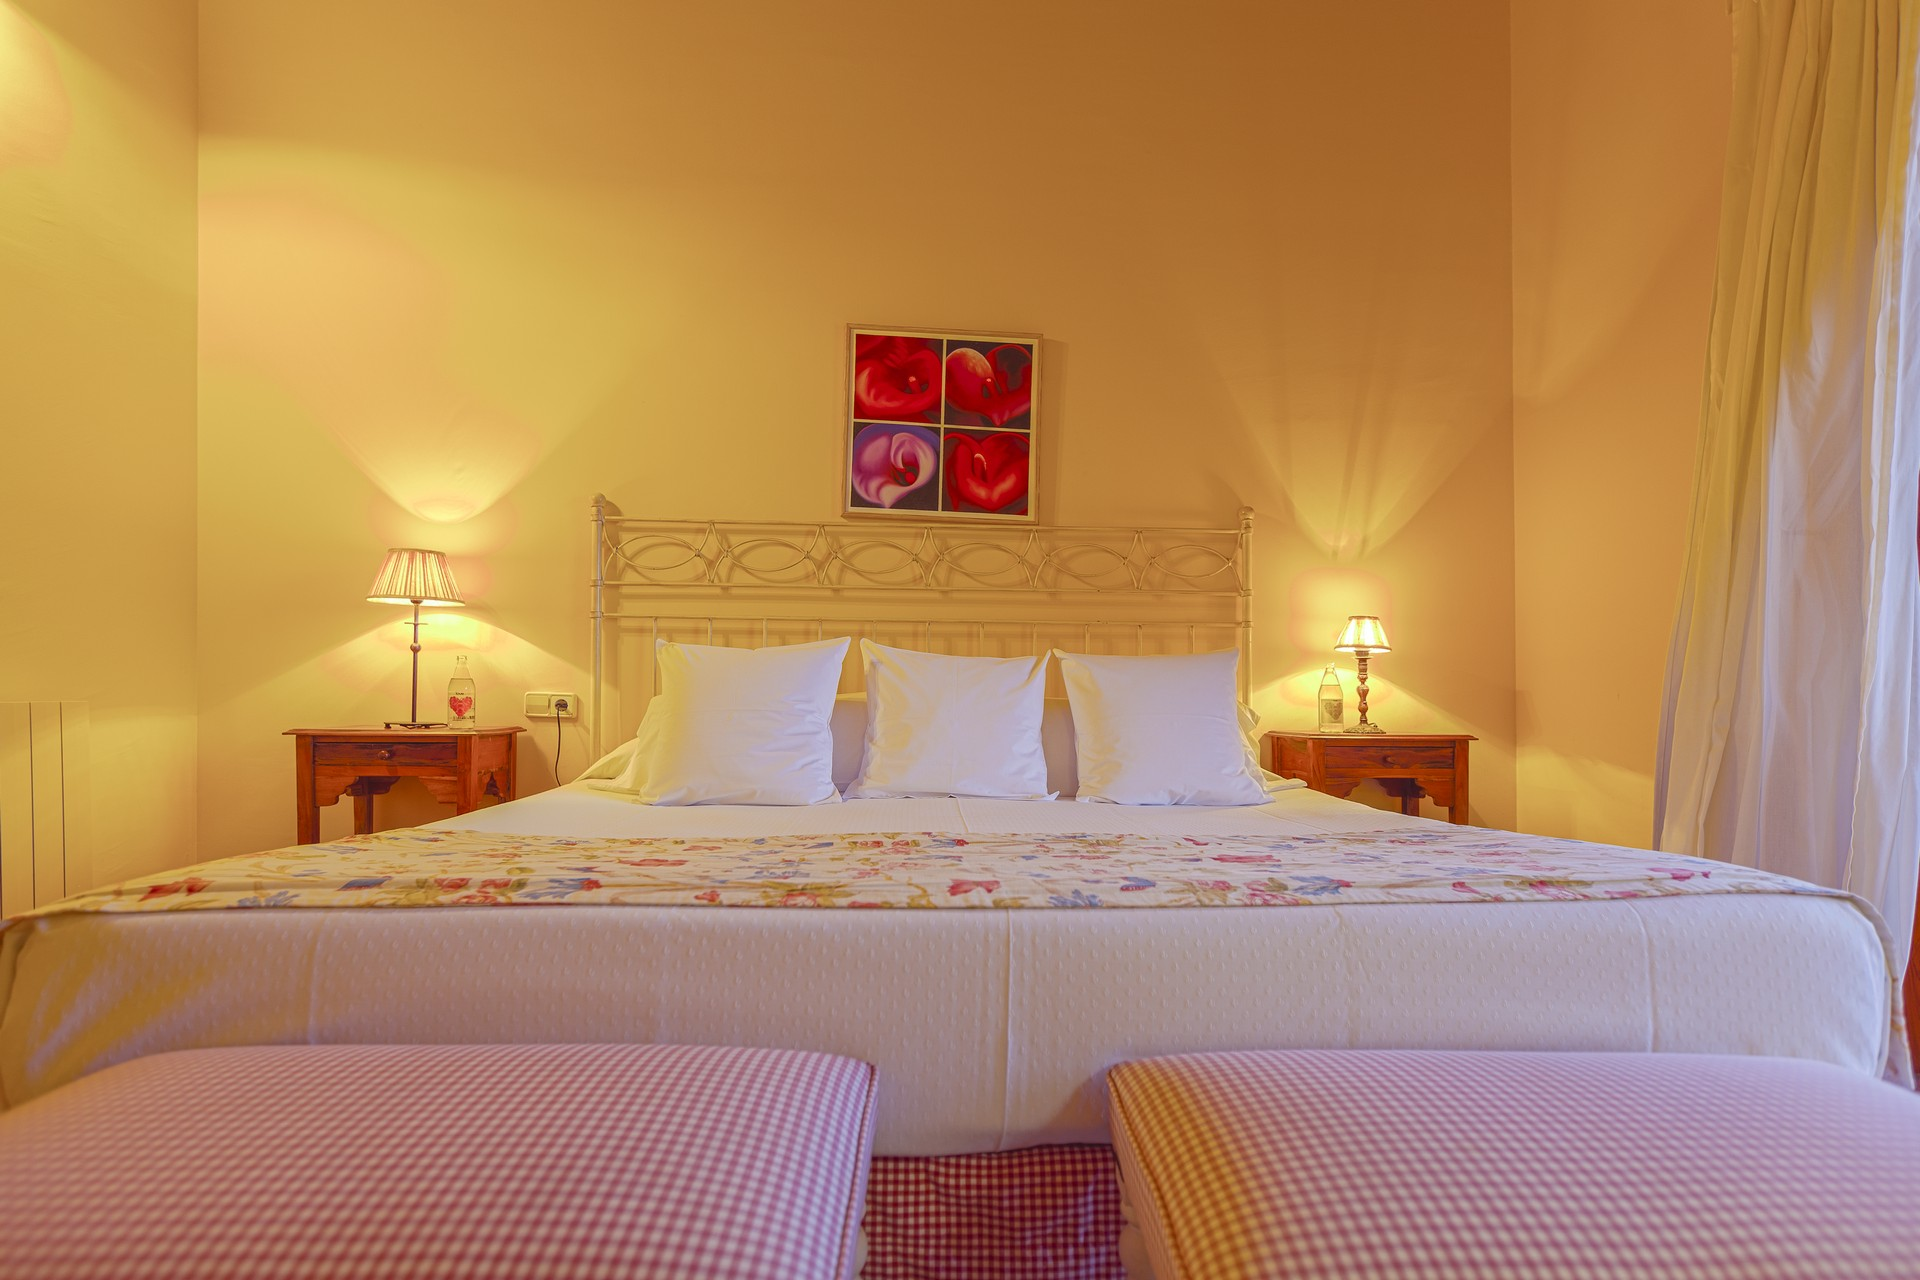 Can Arabi - Double Room with Views Image from Rural Hotels in Ibiza